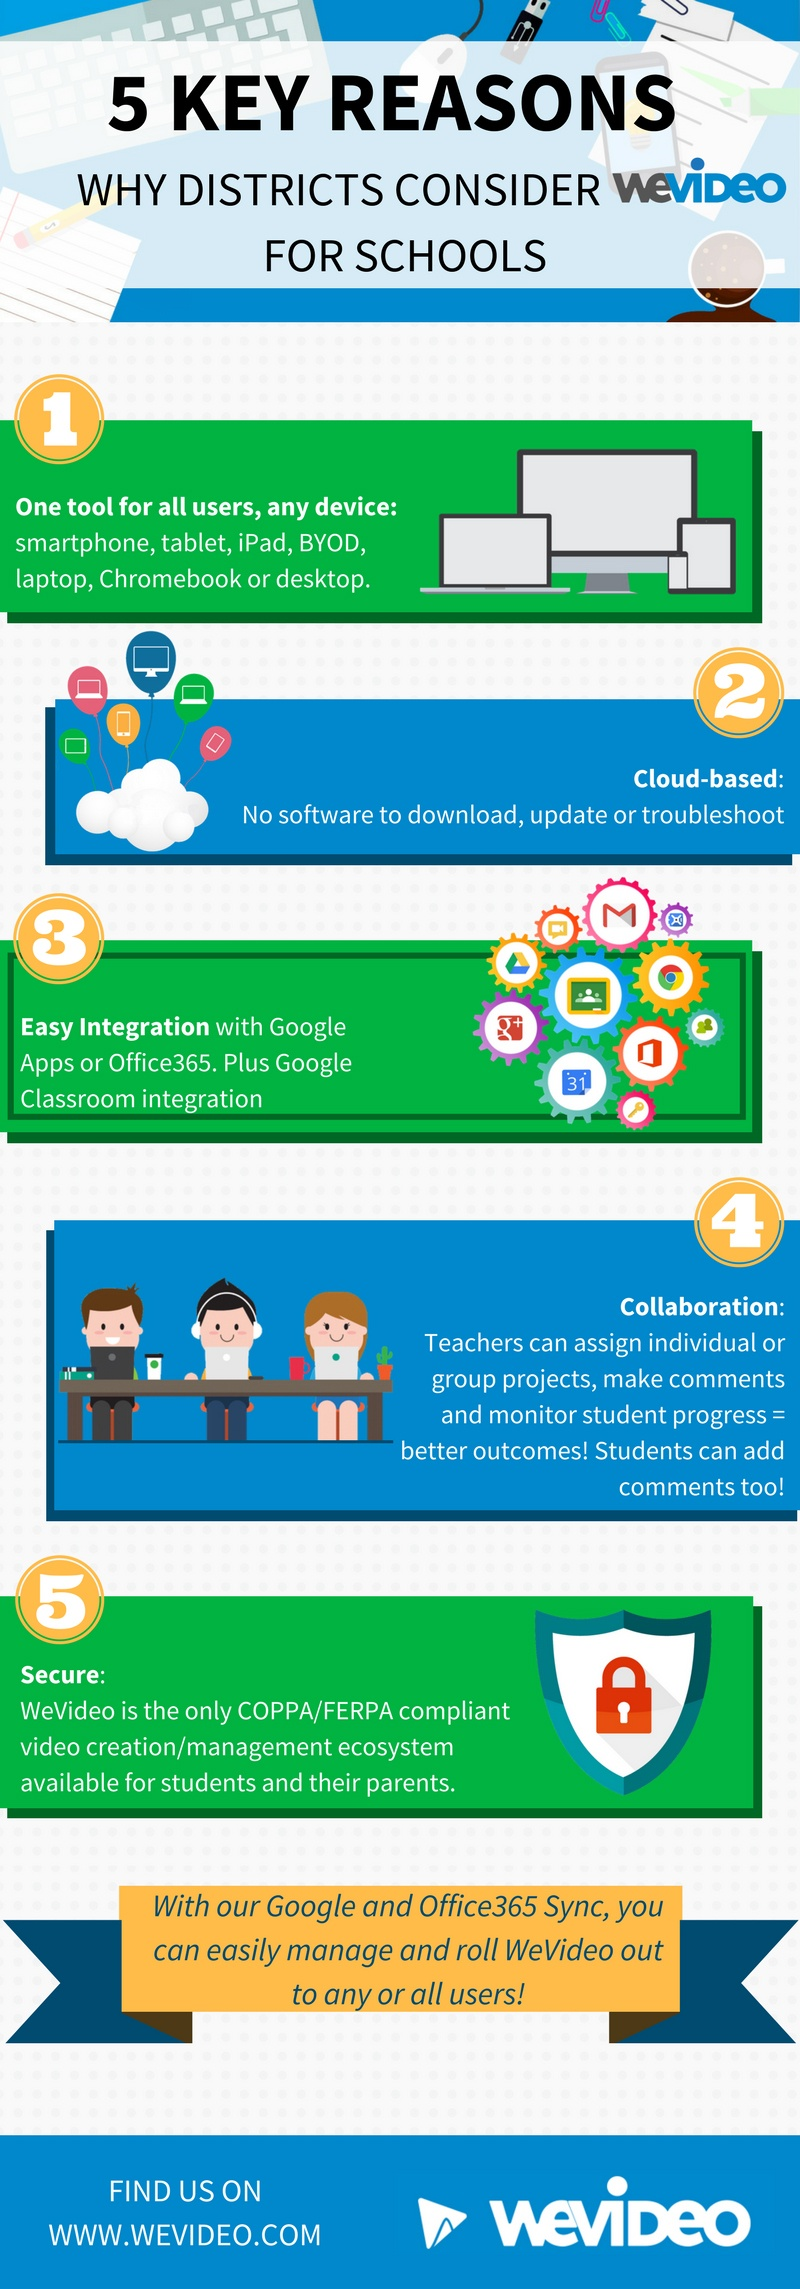 5_key_reasons_why_districts_consider_WeVideo_for_Schools4 (1) (1).jpg